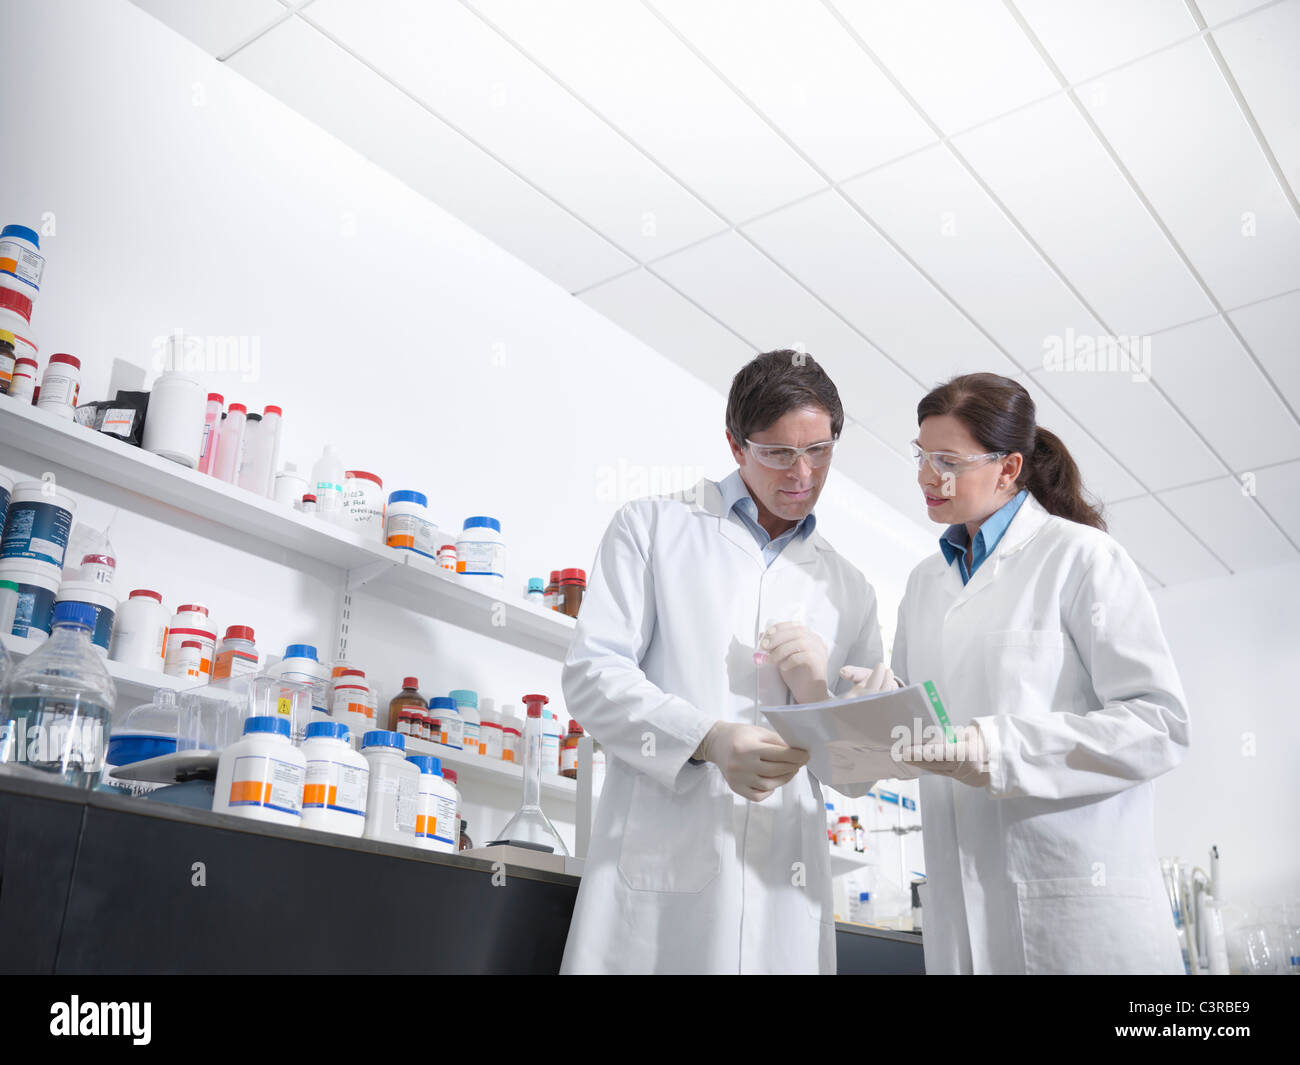 Scientists discussing findings in lab - Stock Image